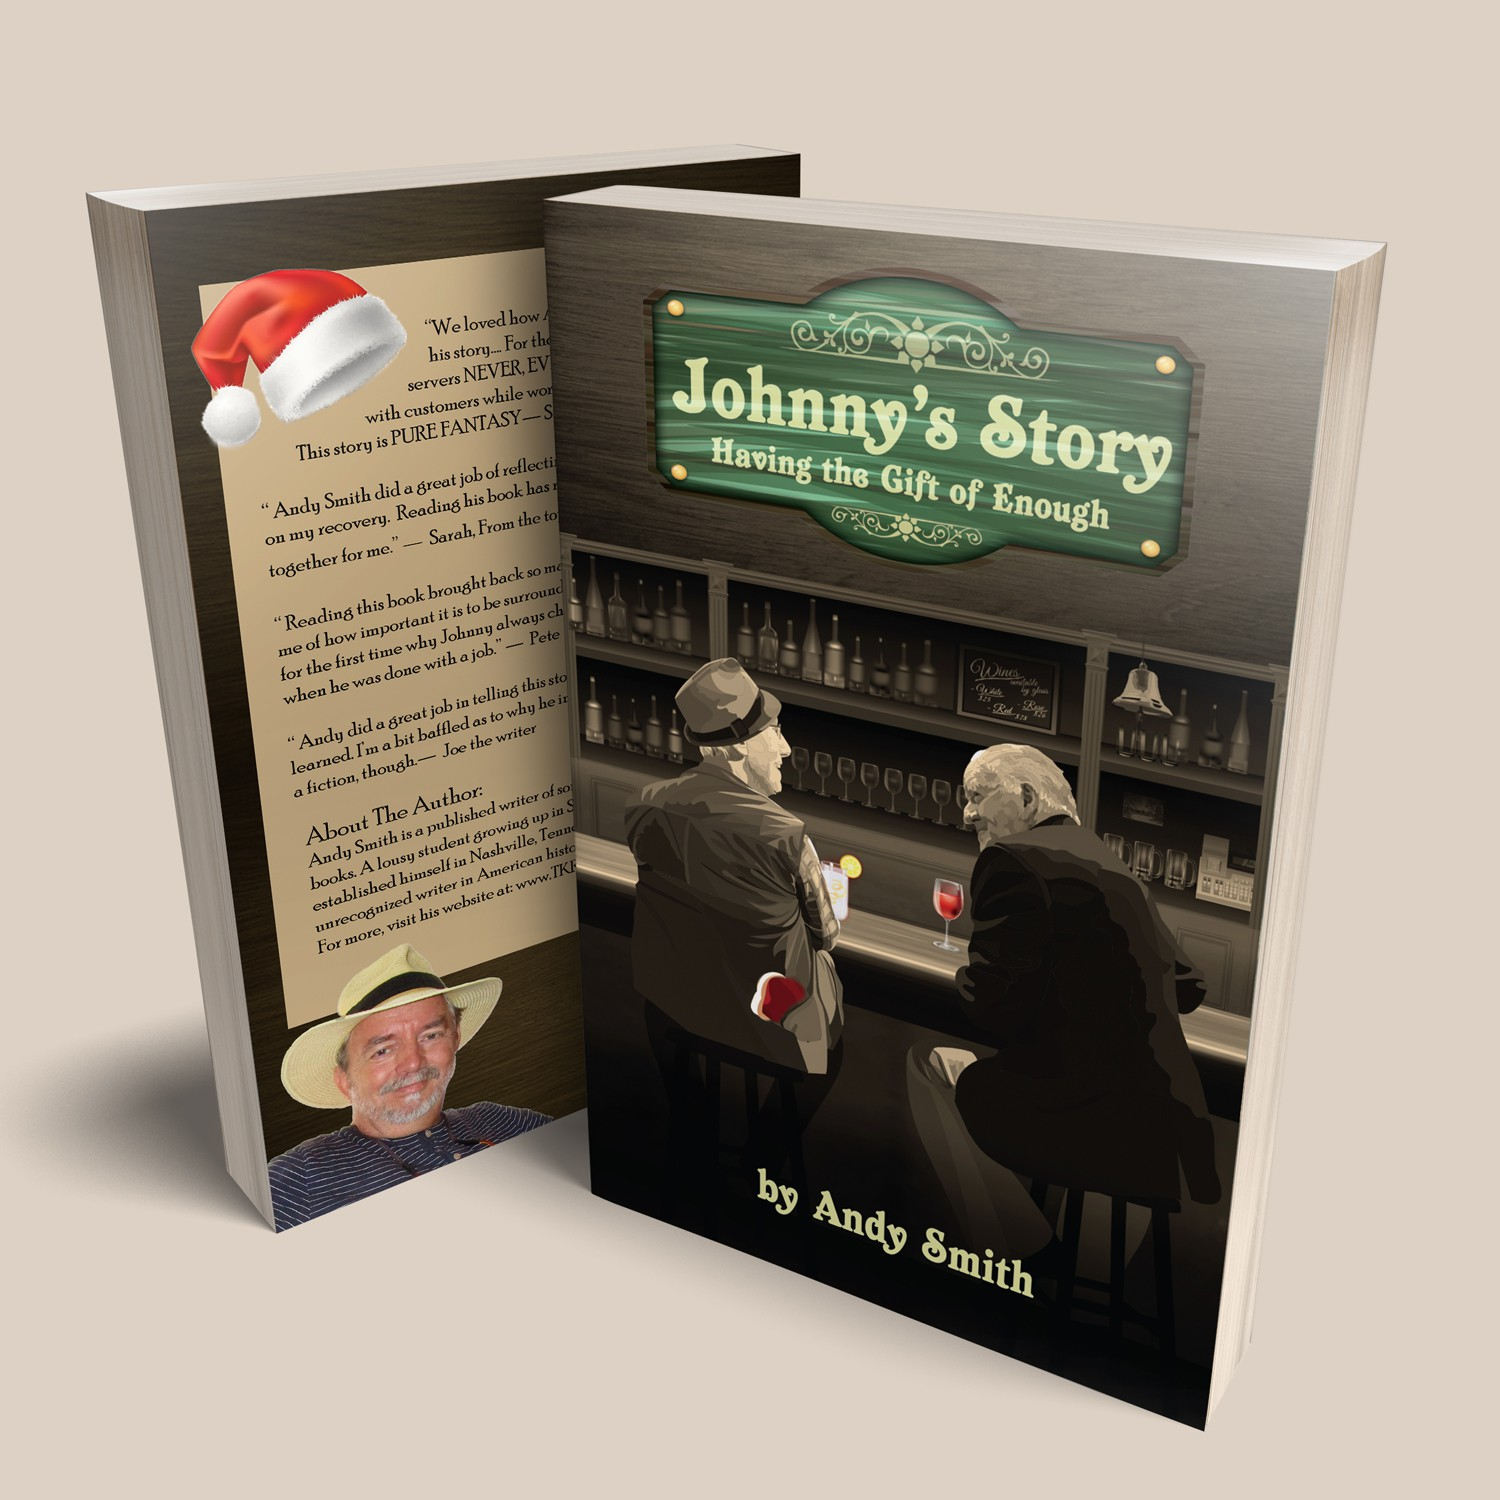 Johnny's Story .... Having the Gift of Enough